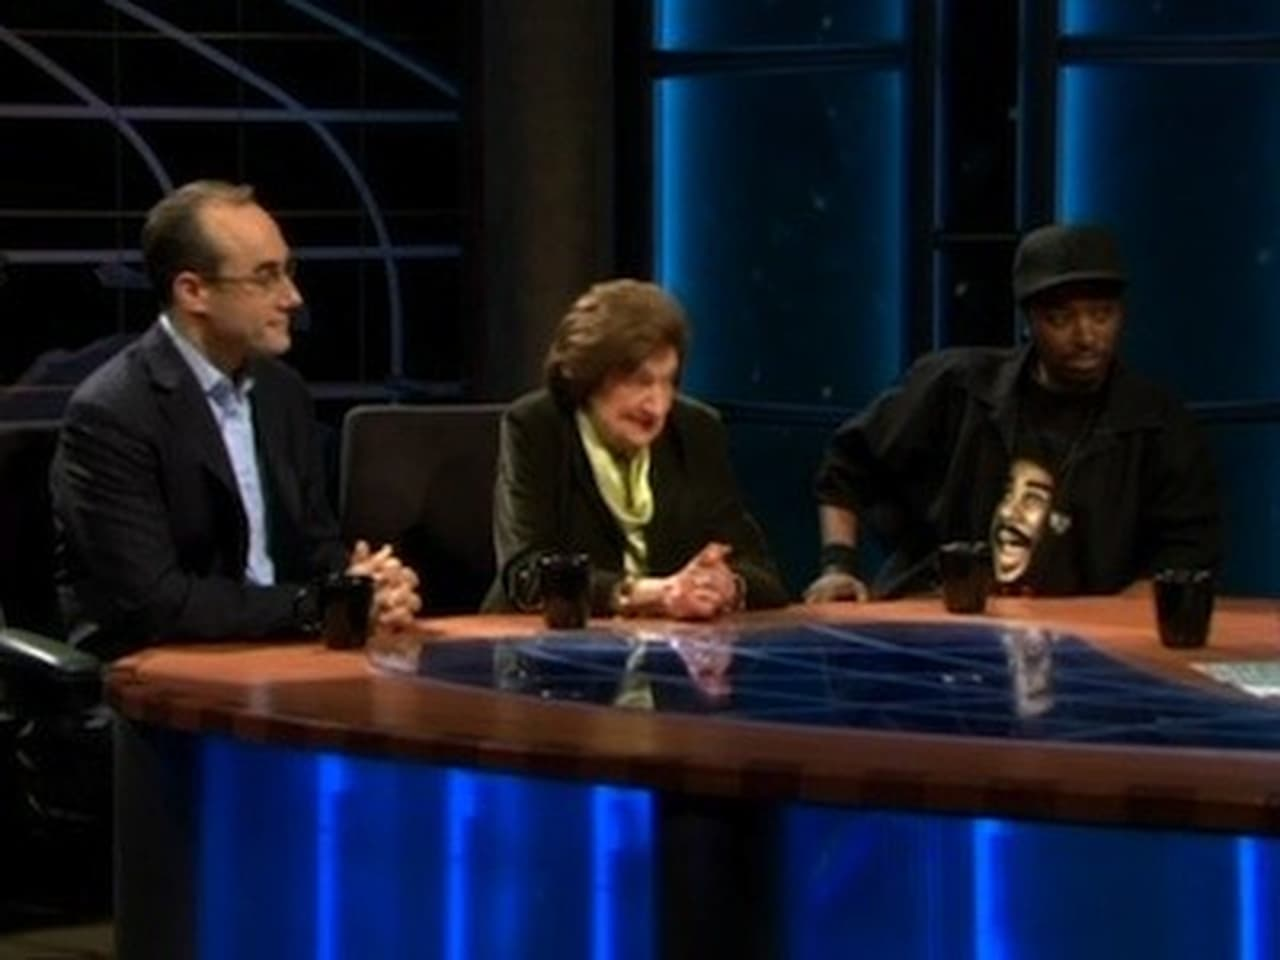 Real Time with Bill Maher - Season 4 Episode 1 : February 17, 2006